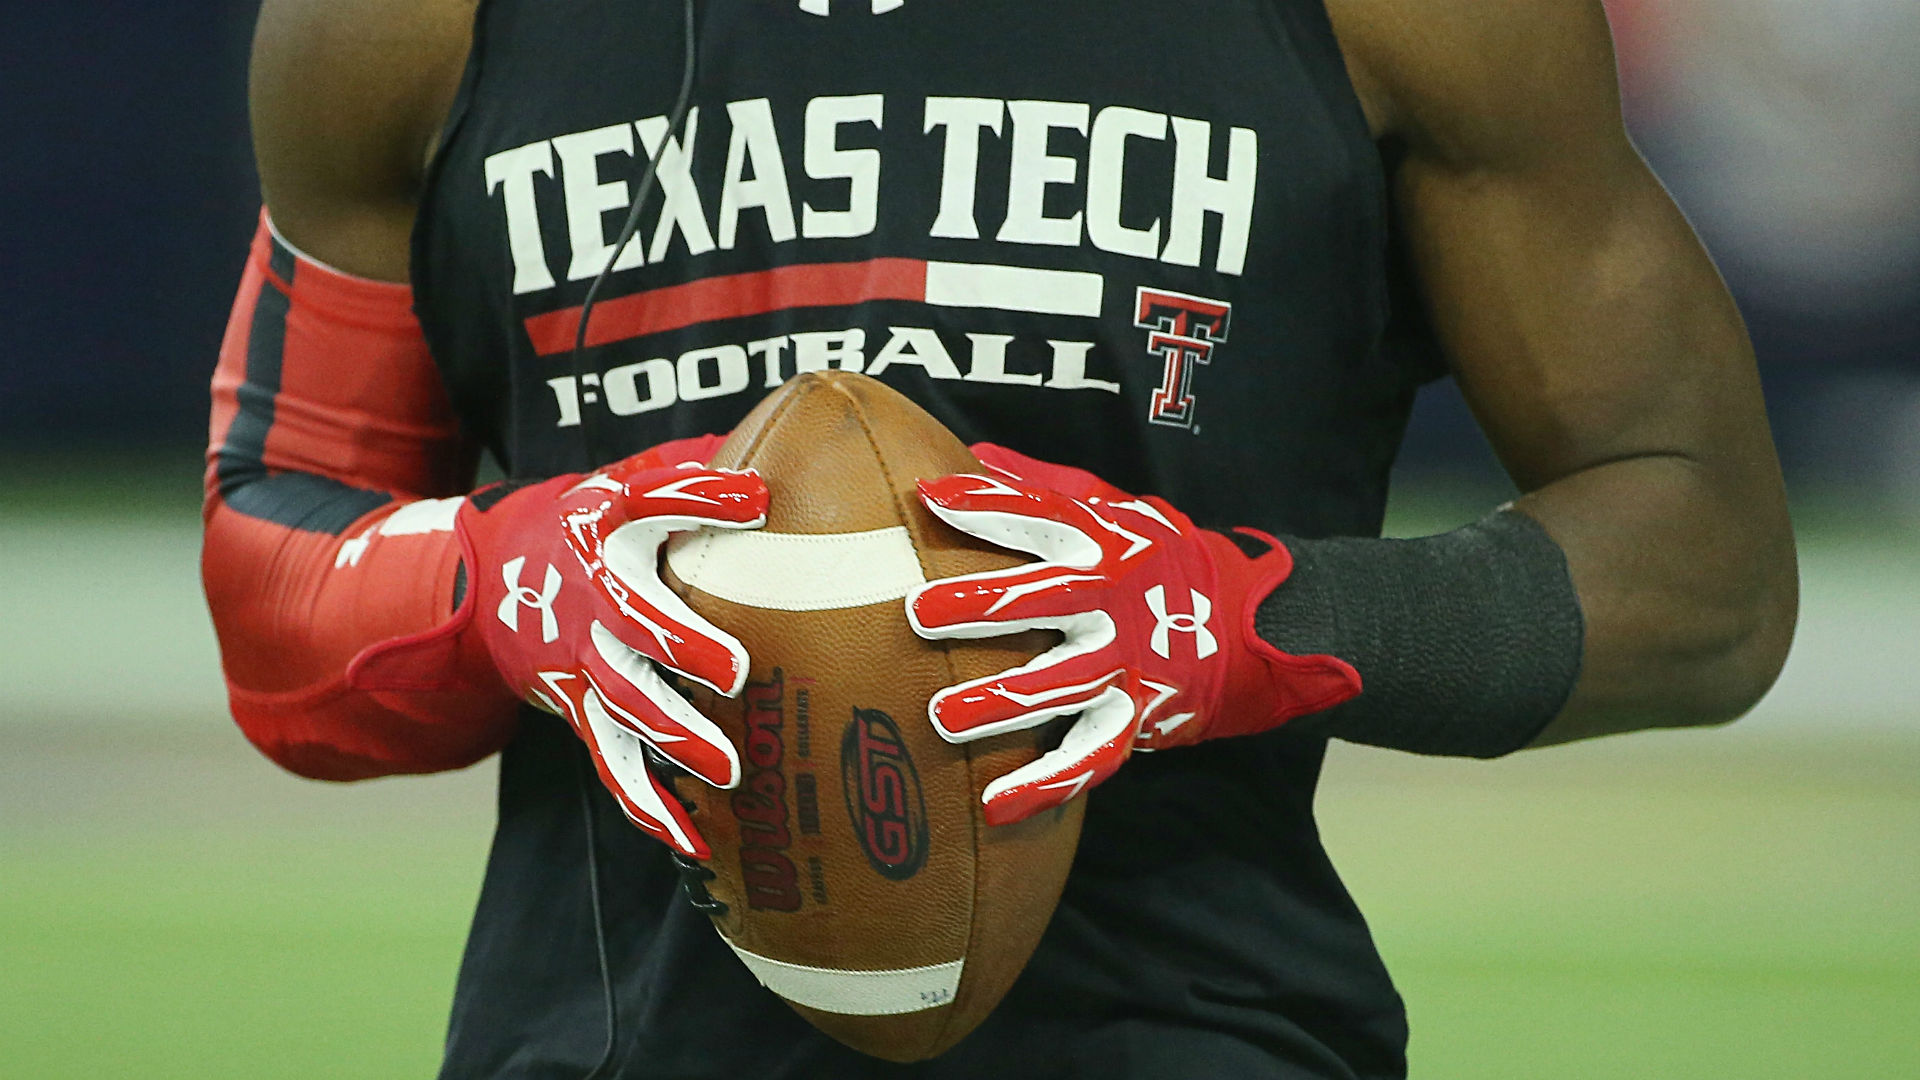 Texas Tech Football Team Suspends 4 Arrested Players